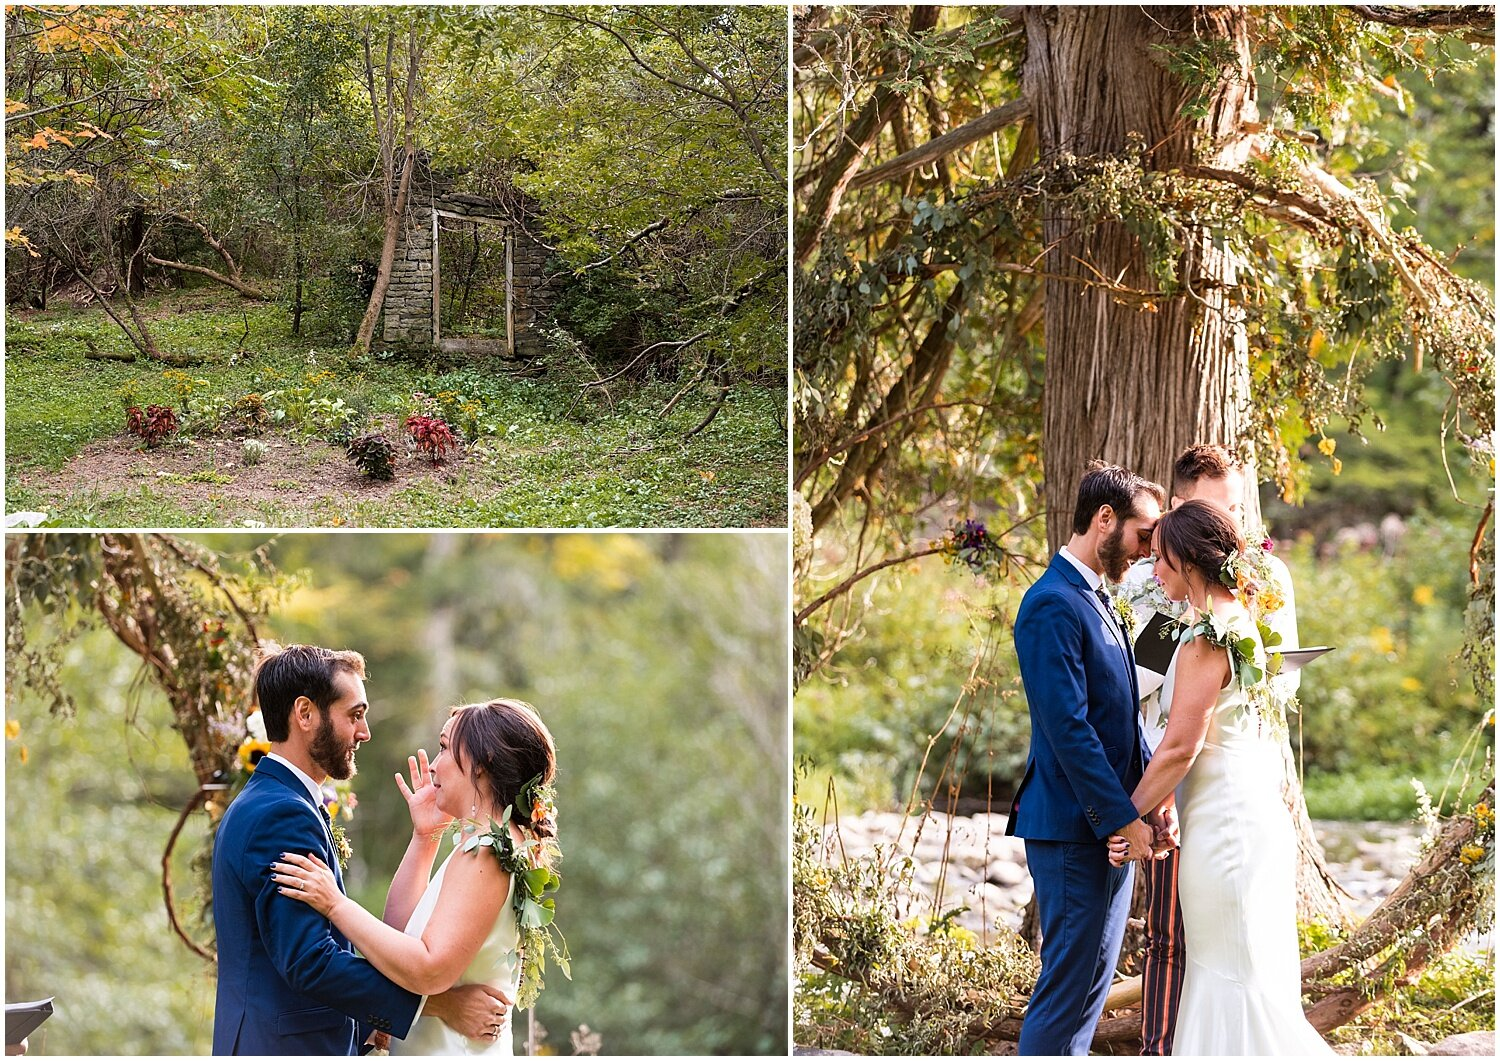 Upstate-NY-Wedding-in-the-Woods-Adventure-Apollo-Fields-56.jpg